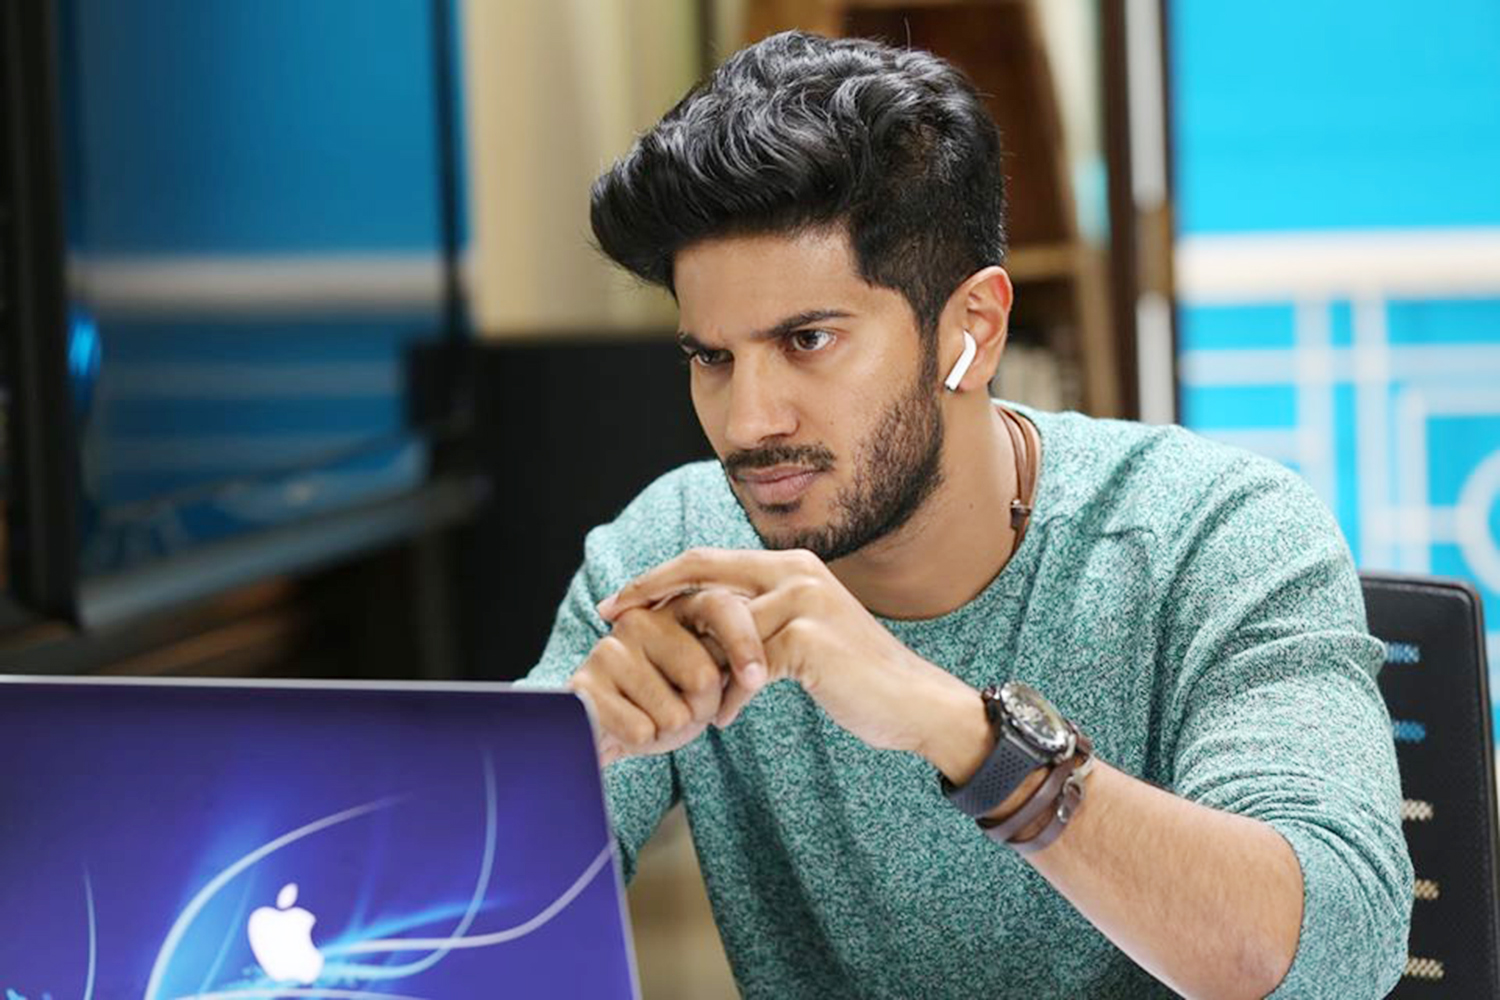 Kannum Kannum Kollaiyadithaal review,Kannum Kannum Kollaiyadithaal ratings,Kannum Kannum Kollaiyadithaal movie review,Kannum Kannum Kollaiyadithaal hit or flop,Kannum Kannum Kollaiyadithaal movie latest reports,dulquer salmaan,dulquer salmaan Kannum Kannum Kollaiyadithaal review,dulquer salmaan latest tamil cinema,Kannum Kannum Kollaiyadithaal review ratings,Kannum Kannum Kollaiyadithaal box office reports,gautham menon,ritu varma,Desingh Periyasamy,latest tamil film news,dulquer salmaan new tamil cinema